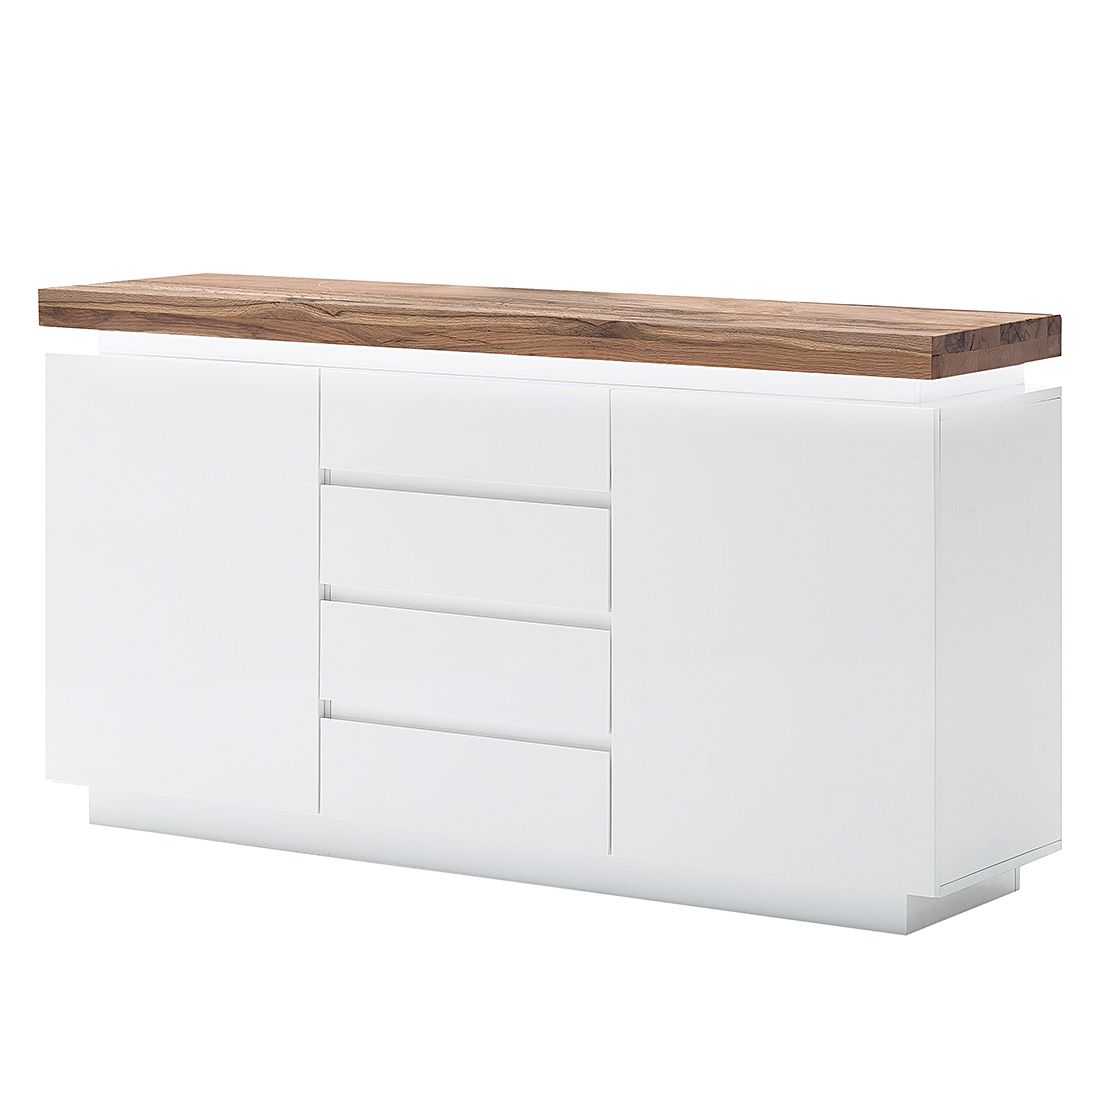 Scrapeo sideboard ikea for Sideboard wildeiche